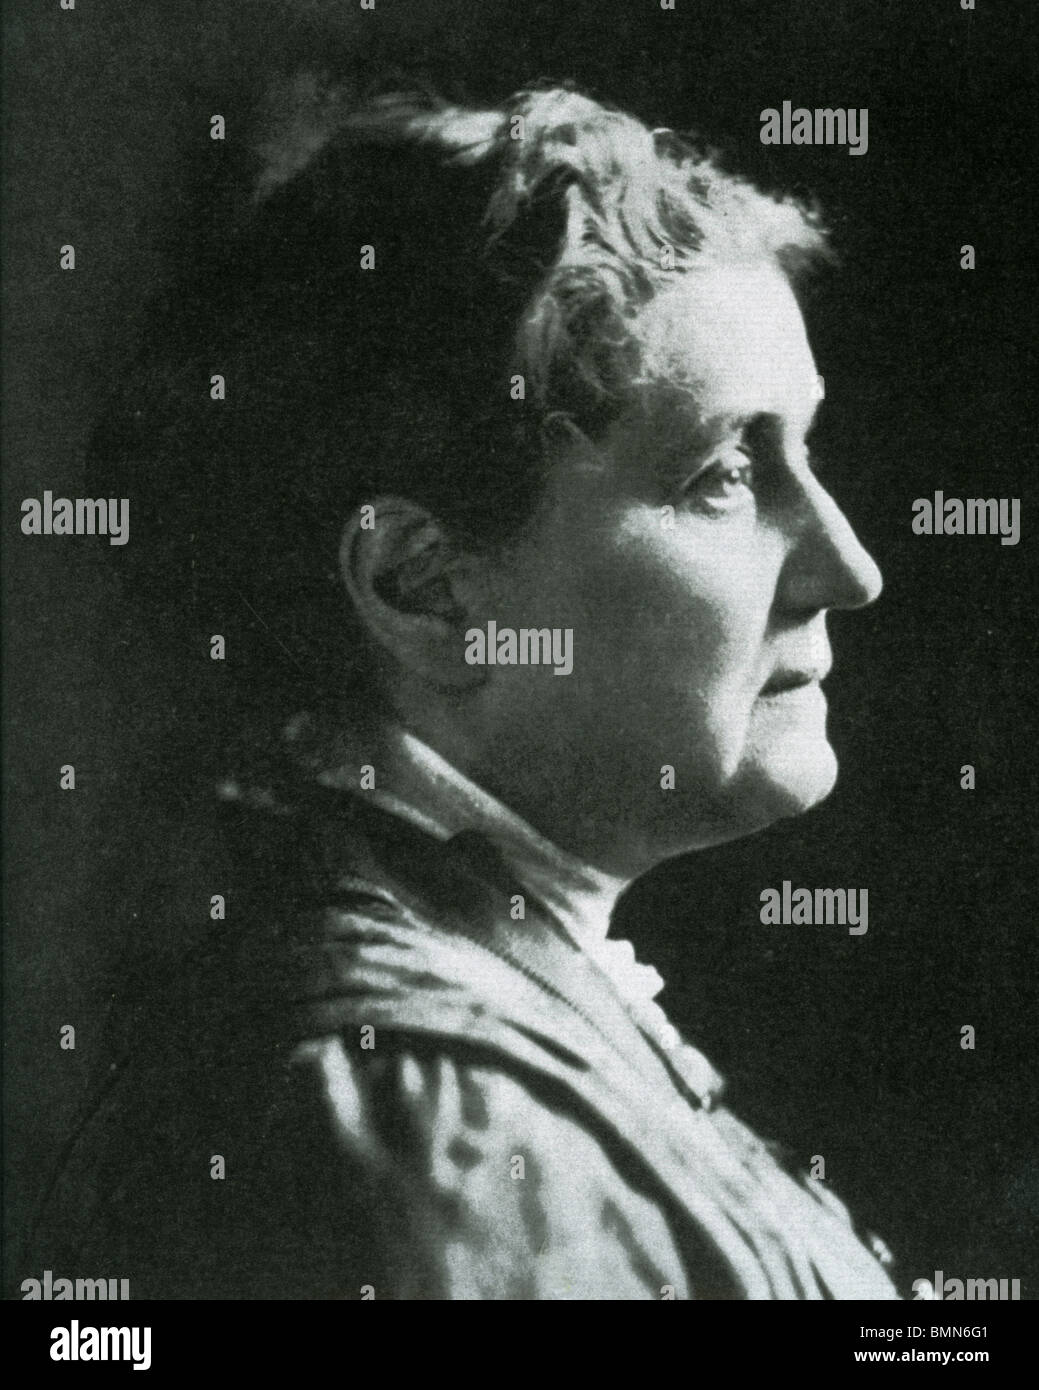 JANE ADDAMS  (1860-1935) a founder of the US Settlement House movement and the second woman to be awarded the Nobel - Stock Image